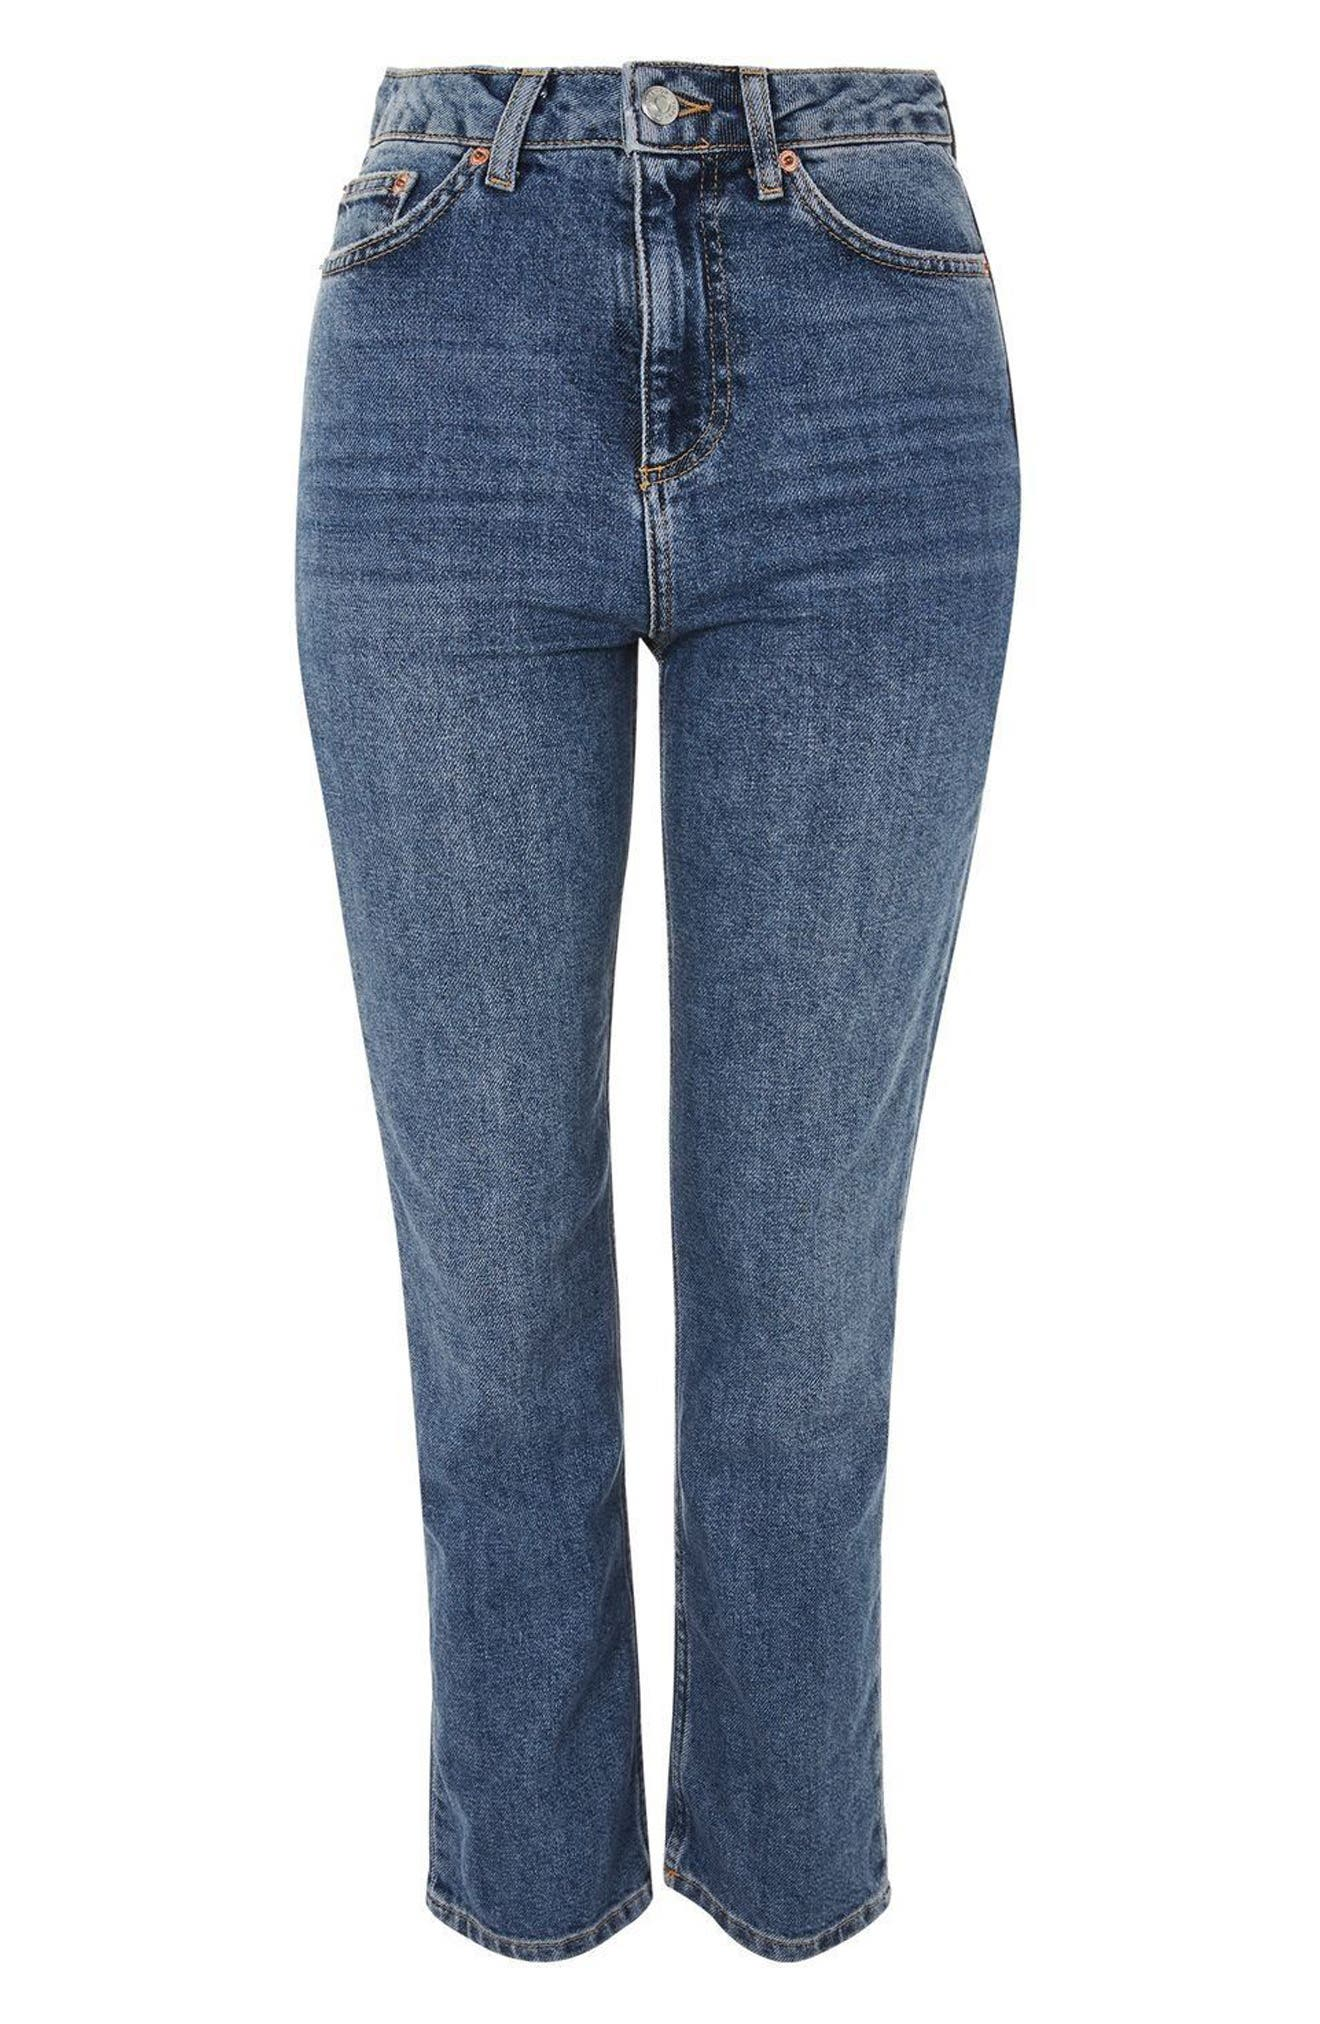 TOPSHOP,                             Straight Leg Jeans,                             Alternate thumbnail 7, color,                             MID DENIM